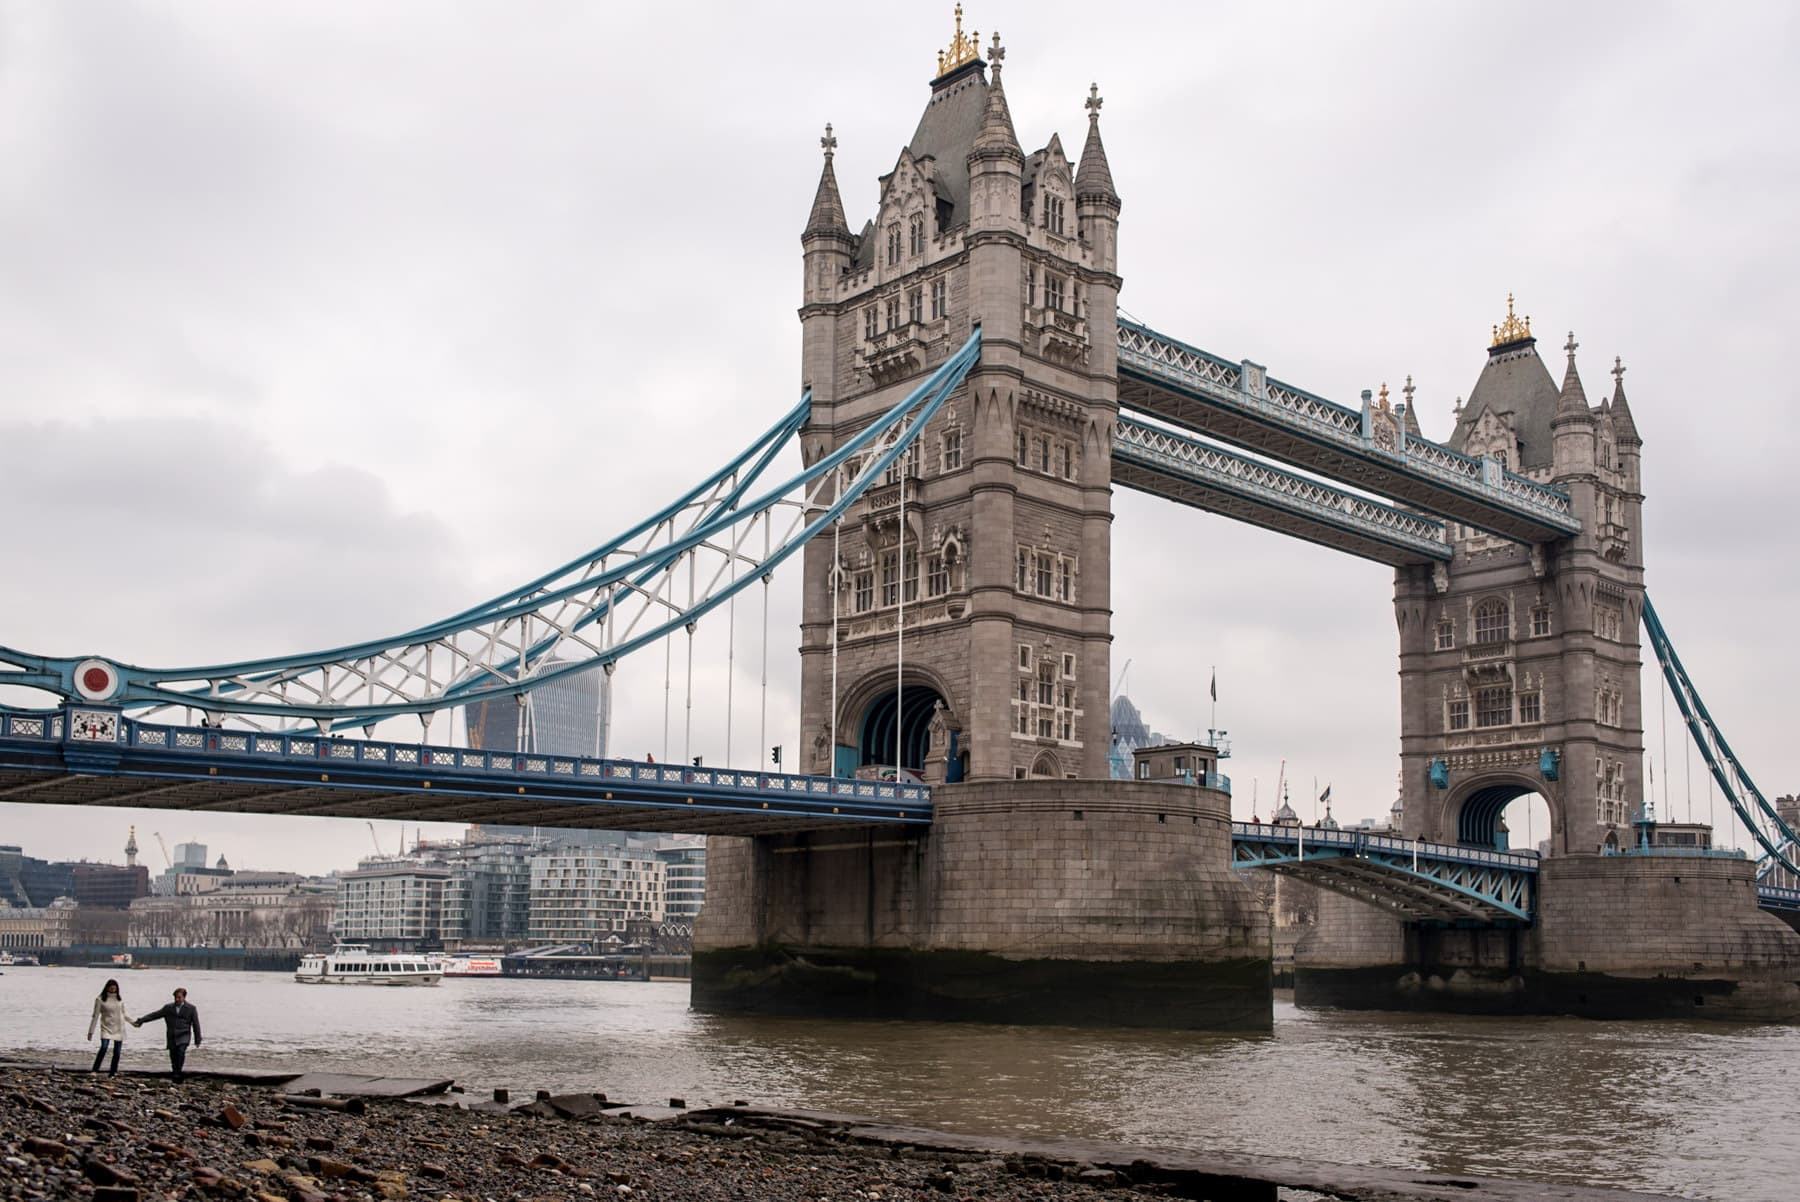 Couple walking on the Thames beach at low tide next to the Tower of London during their proposal shoot